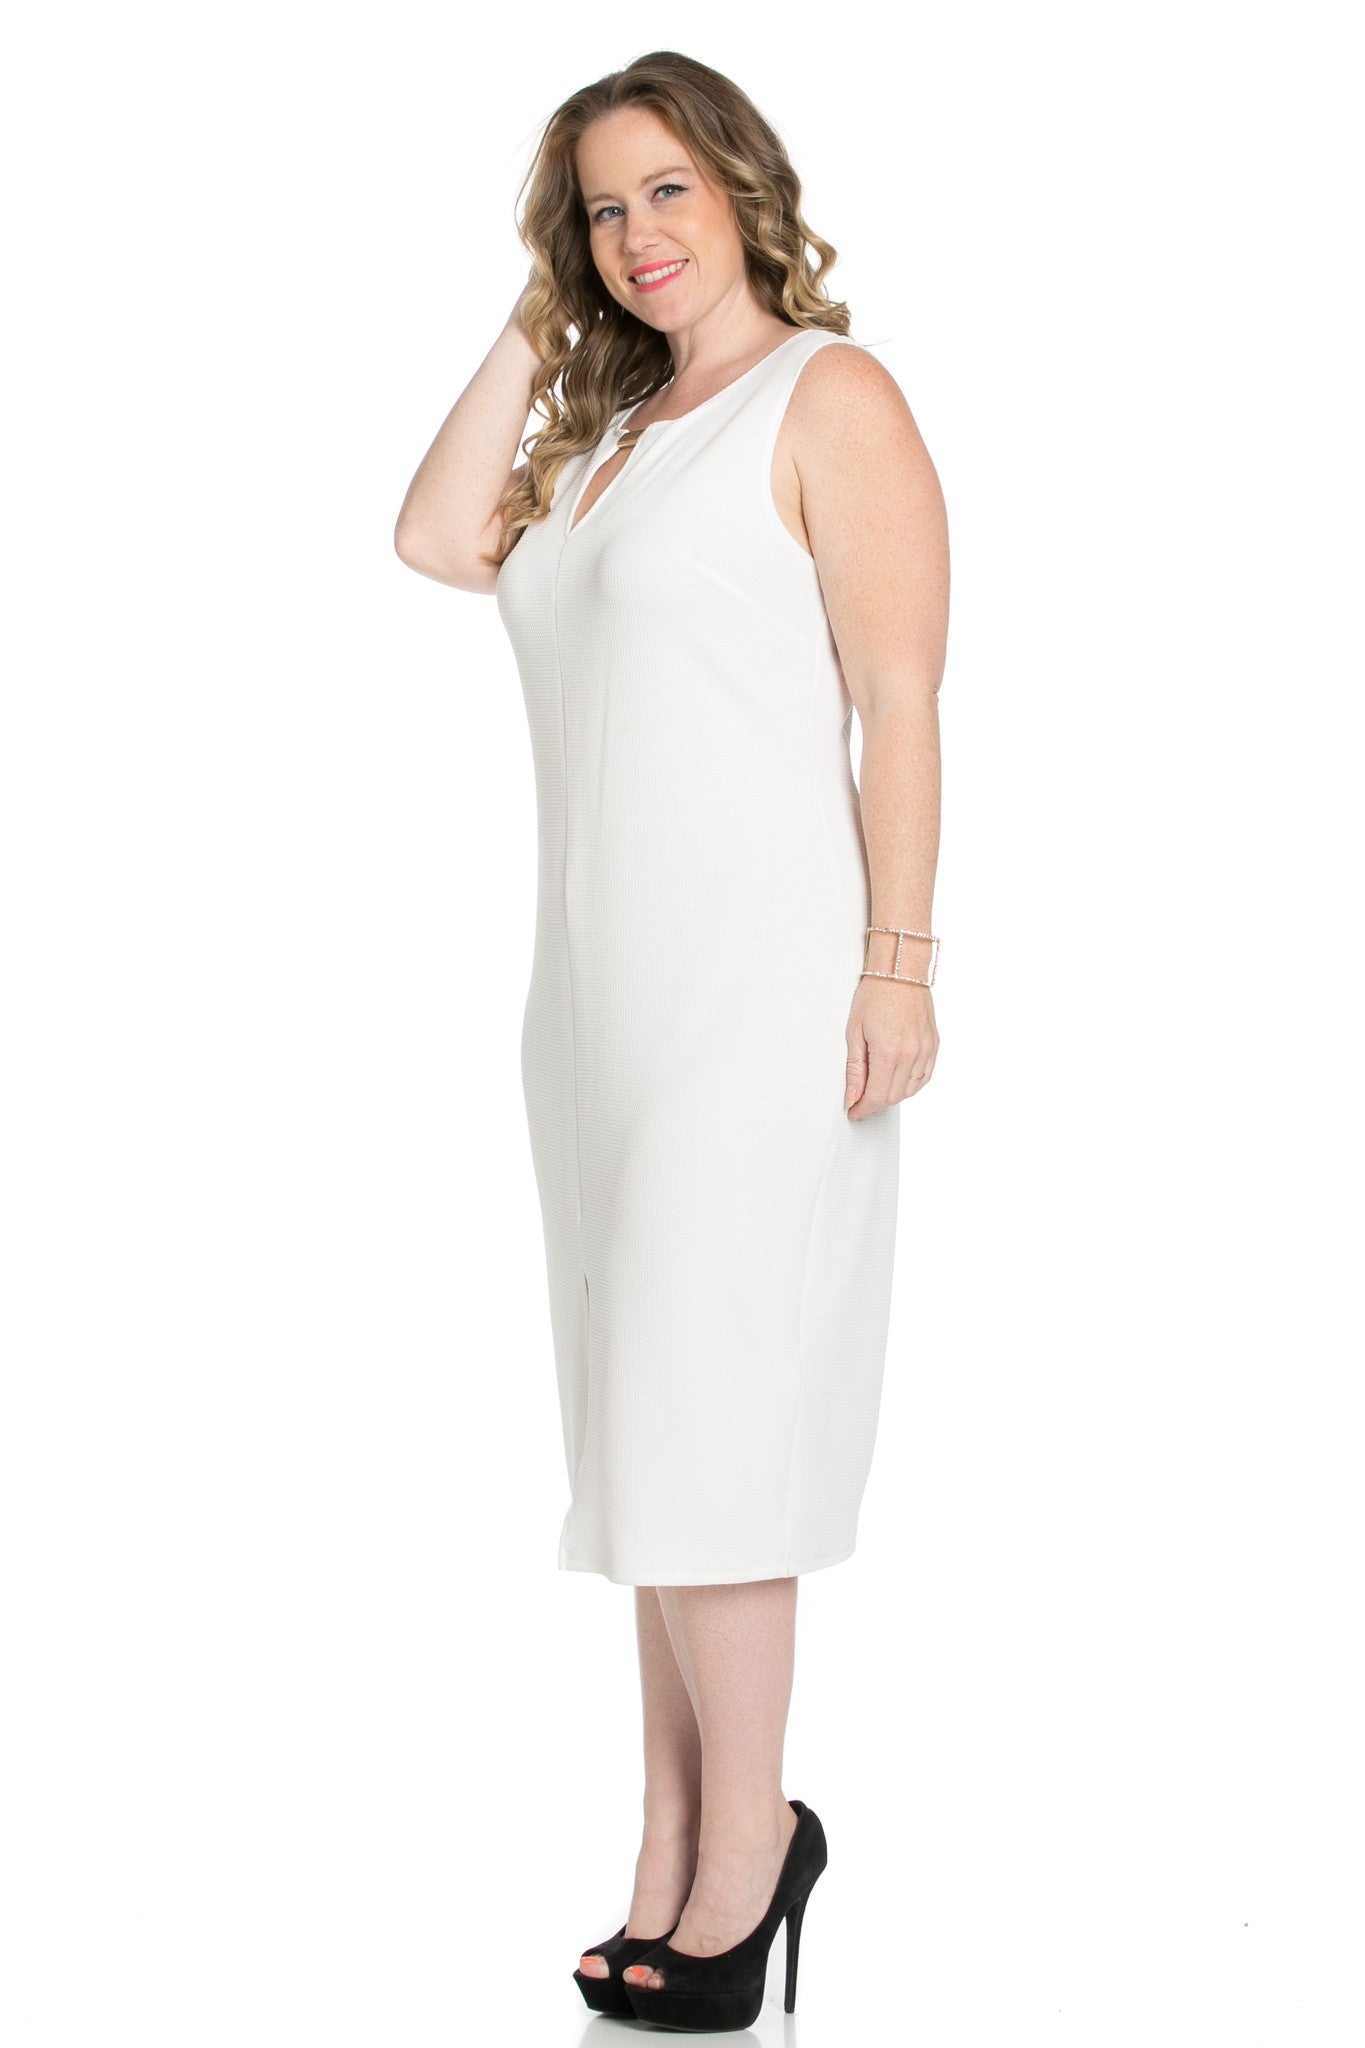 White Modest a Bit with Bare Shoulders Dress - Dresses - My Yuccie - 2